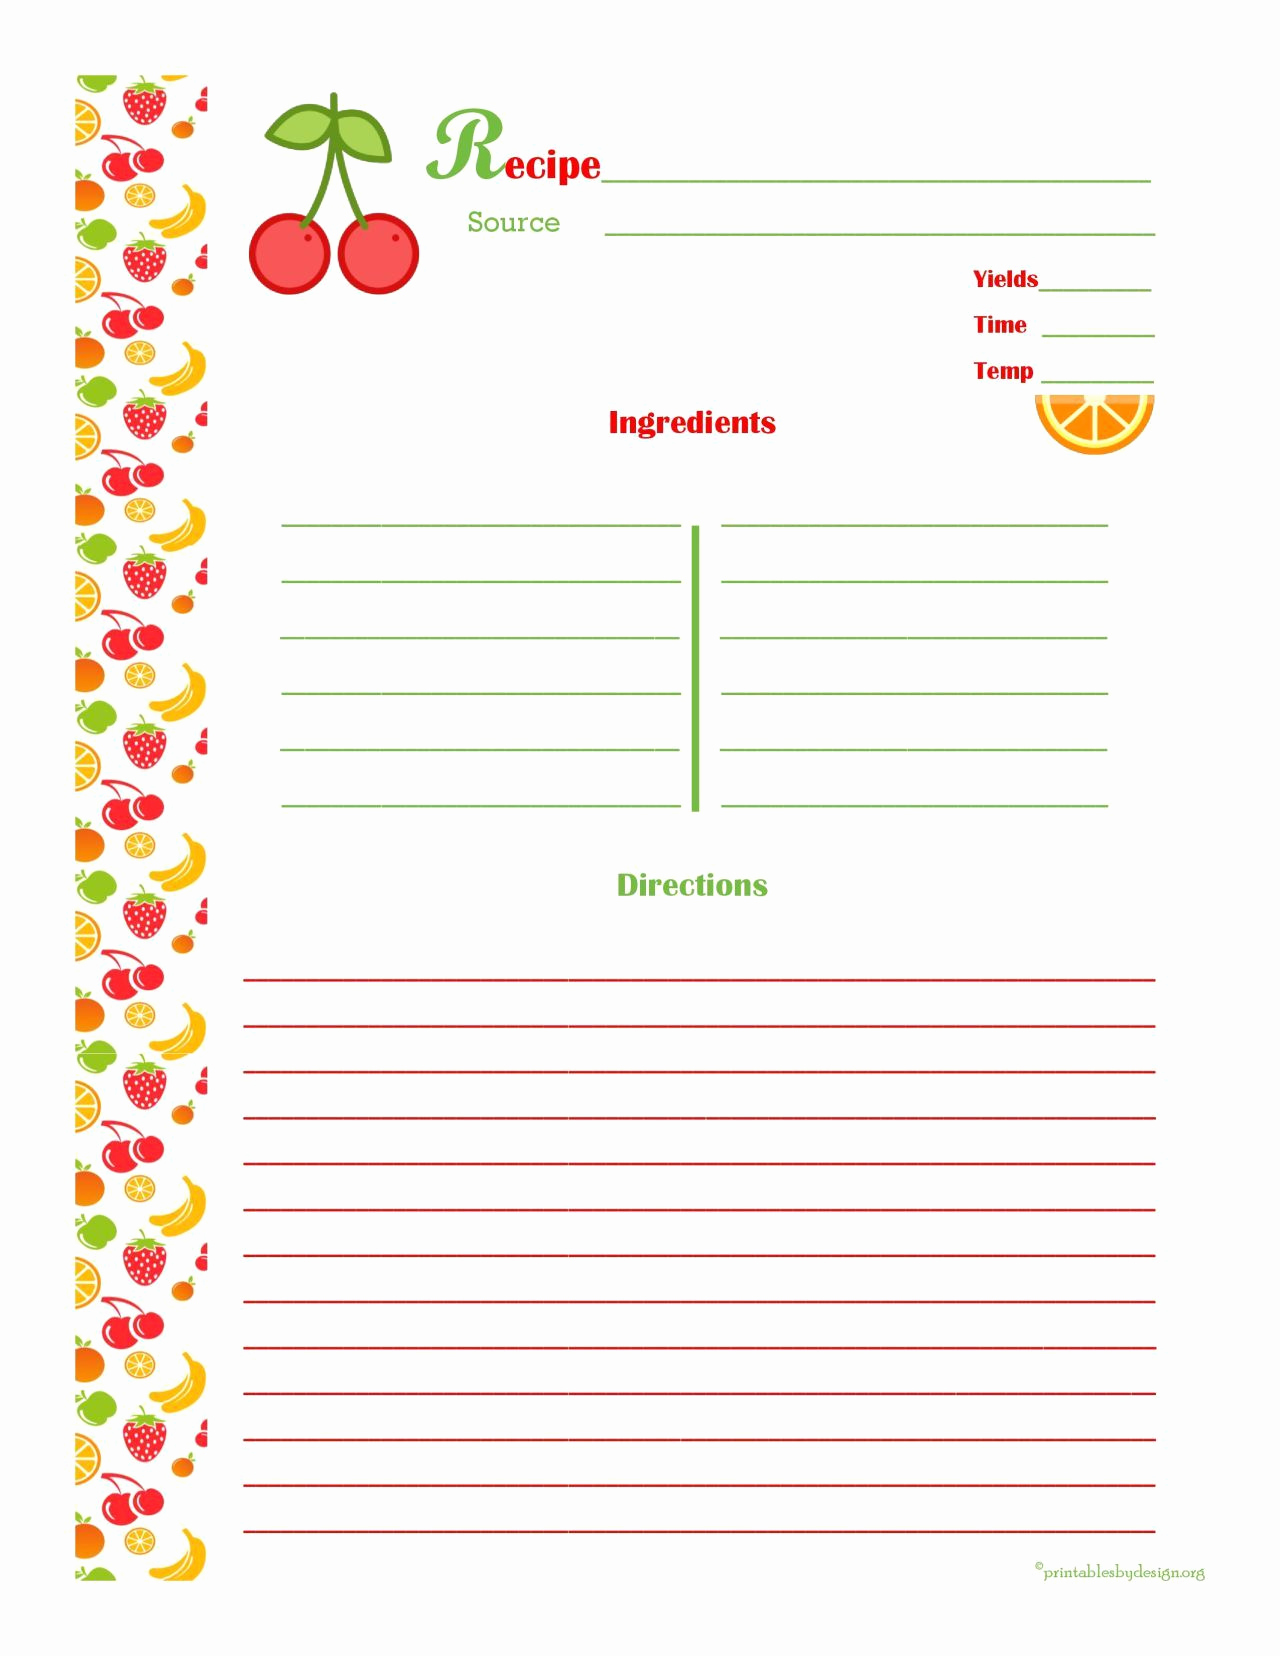 Editable Recipe Card Template Fresh Free Editable Recipe Card Templates for Microsoft Word